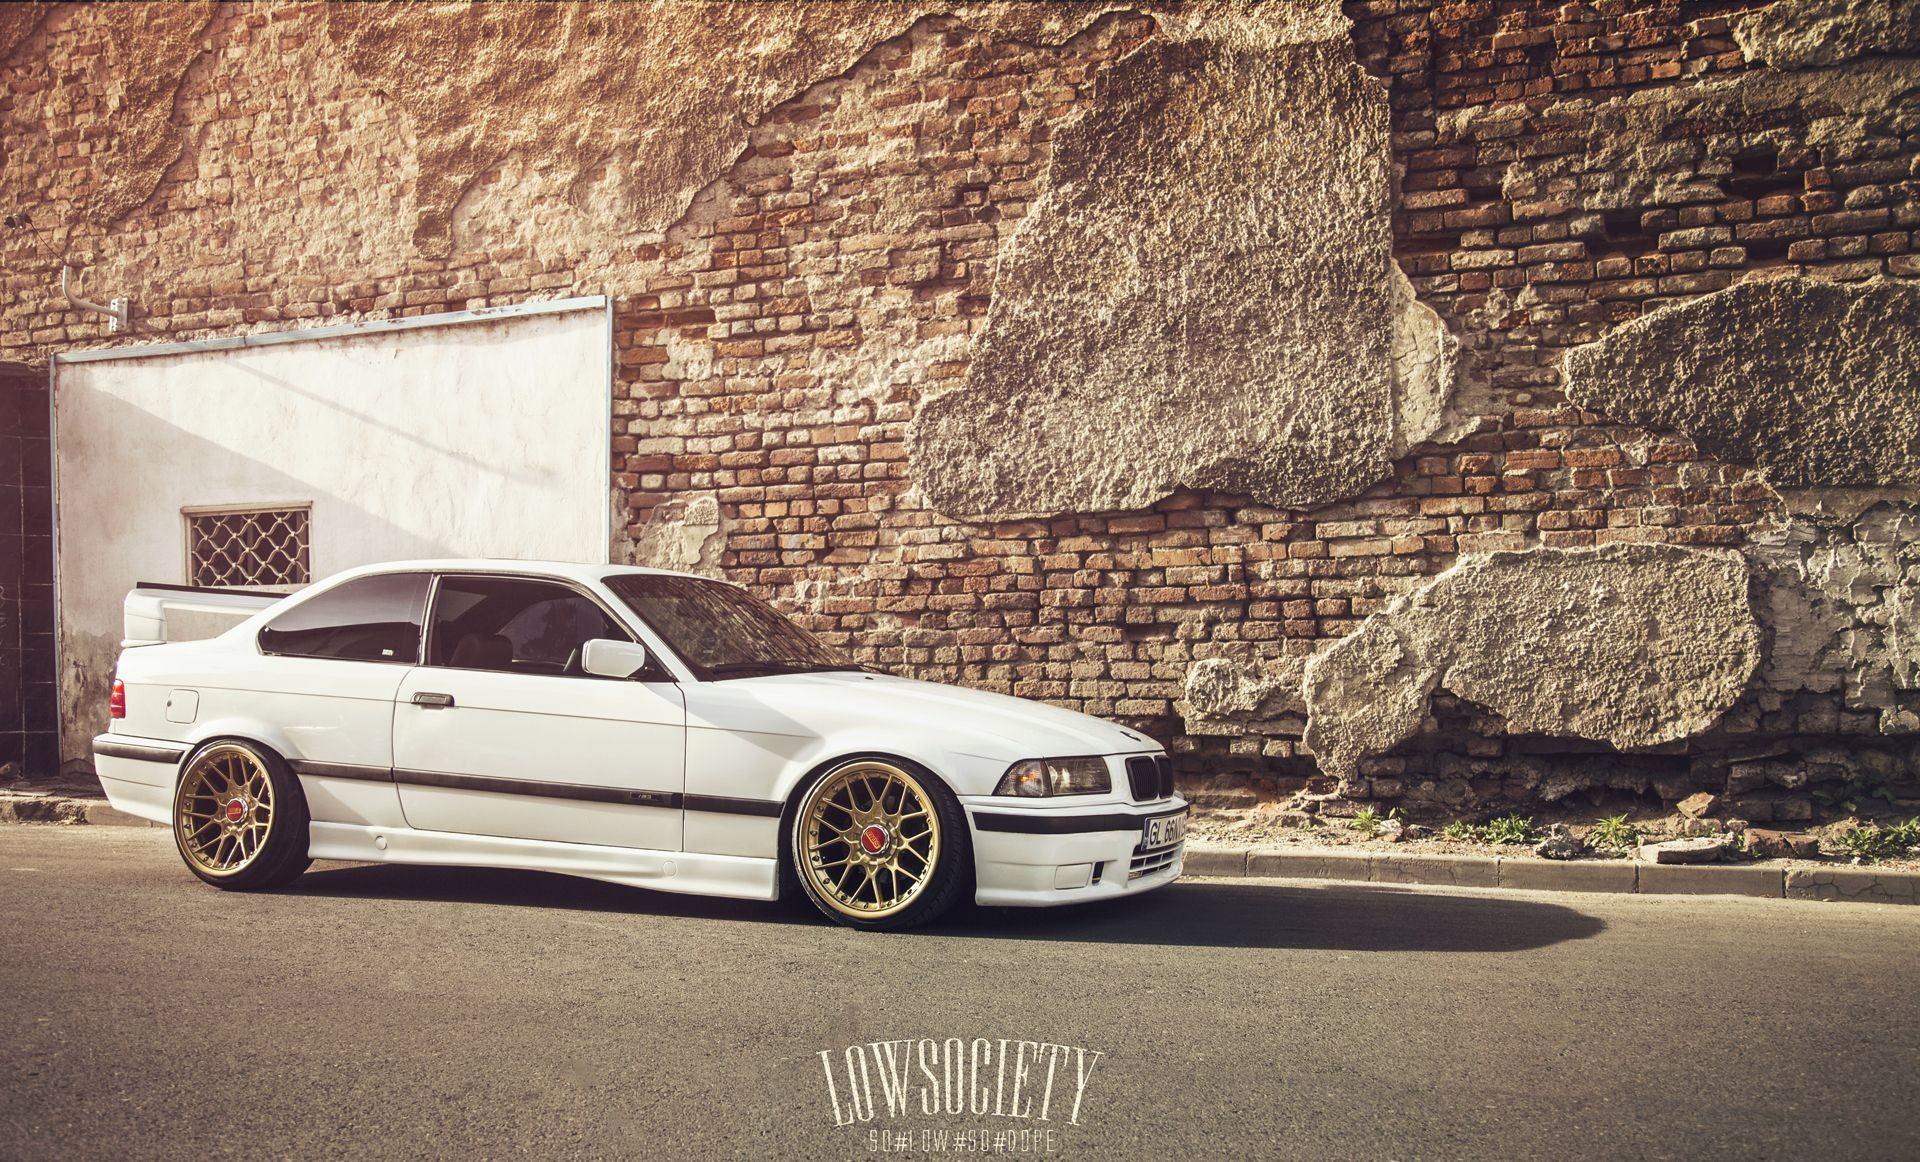 1920x1162 BMW - Bmw e36 coupe M3 wallpaper - Wallpapers